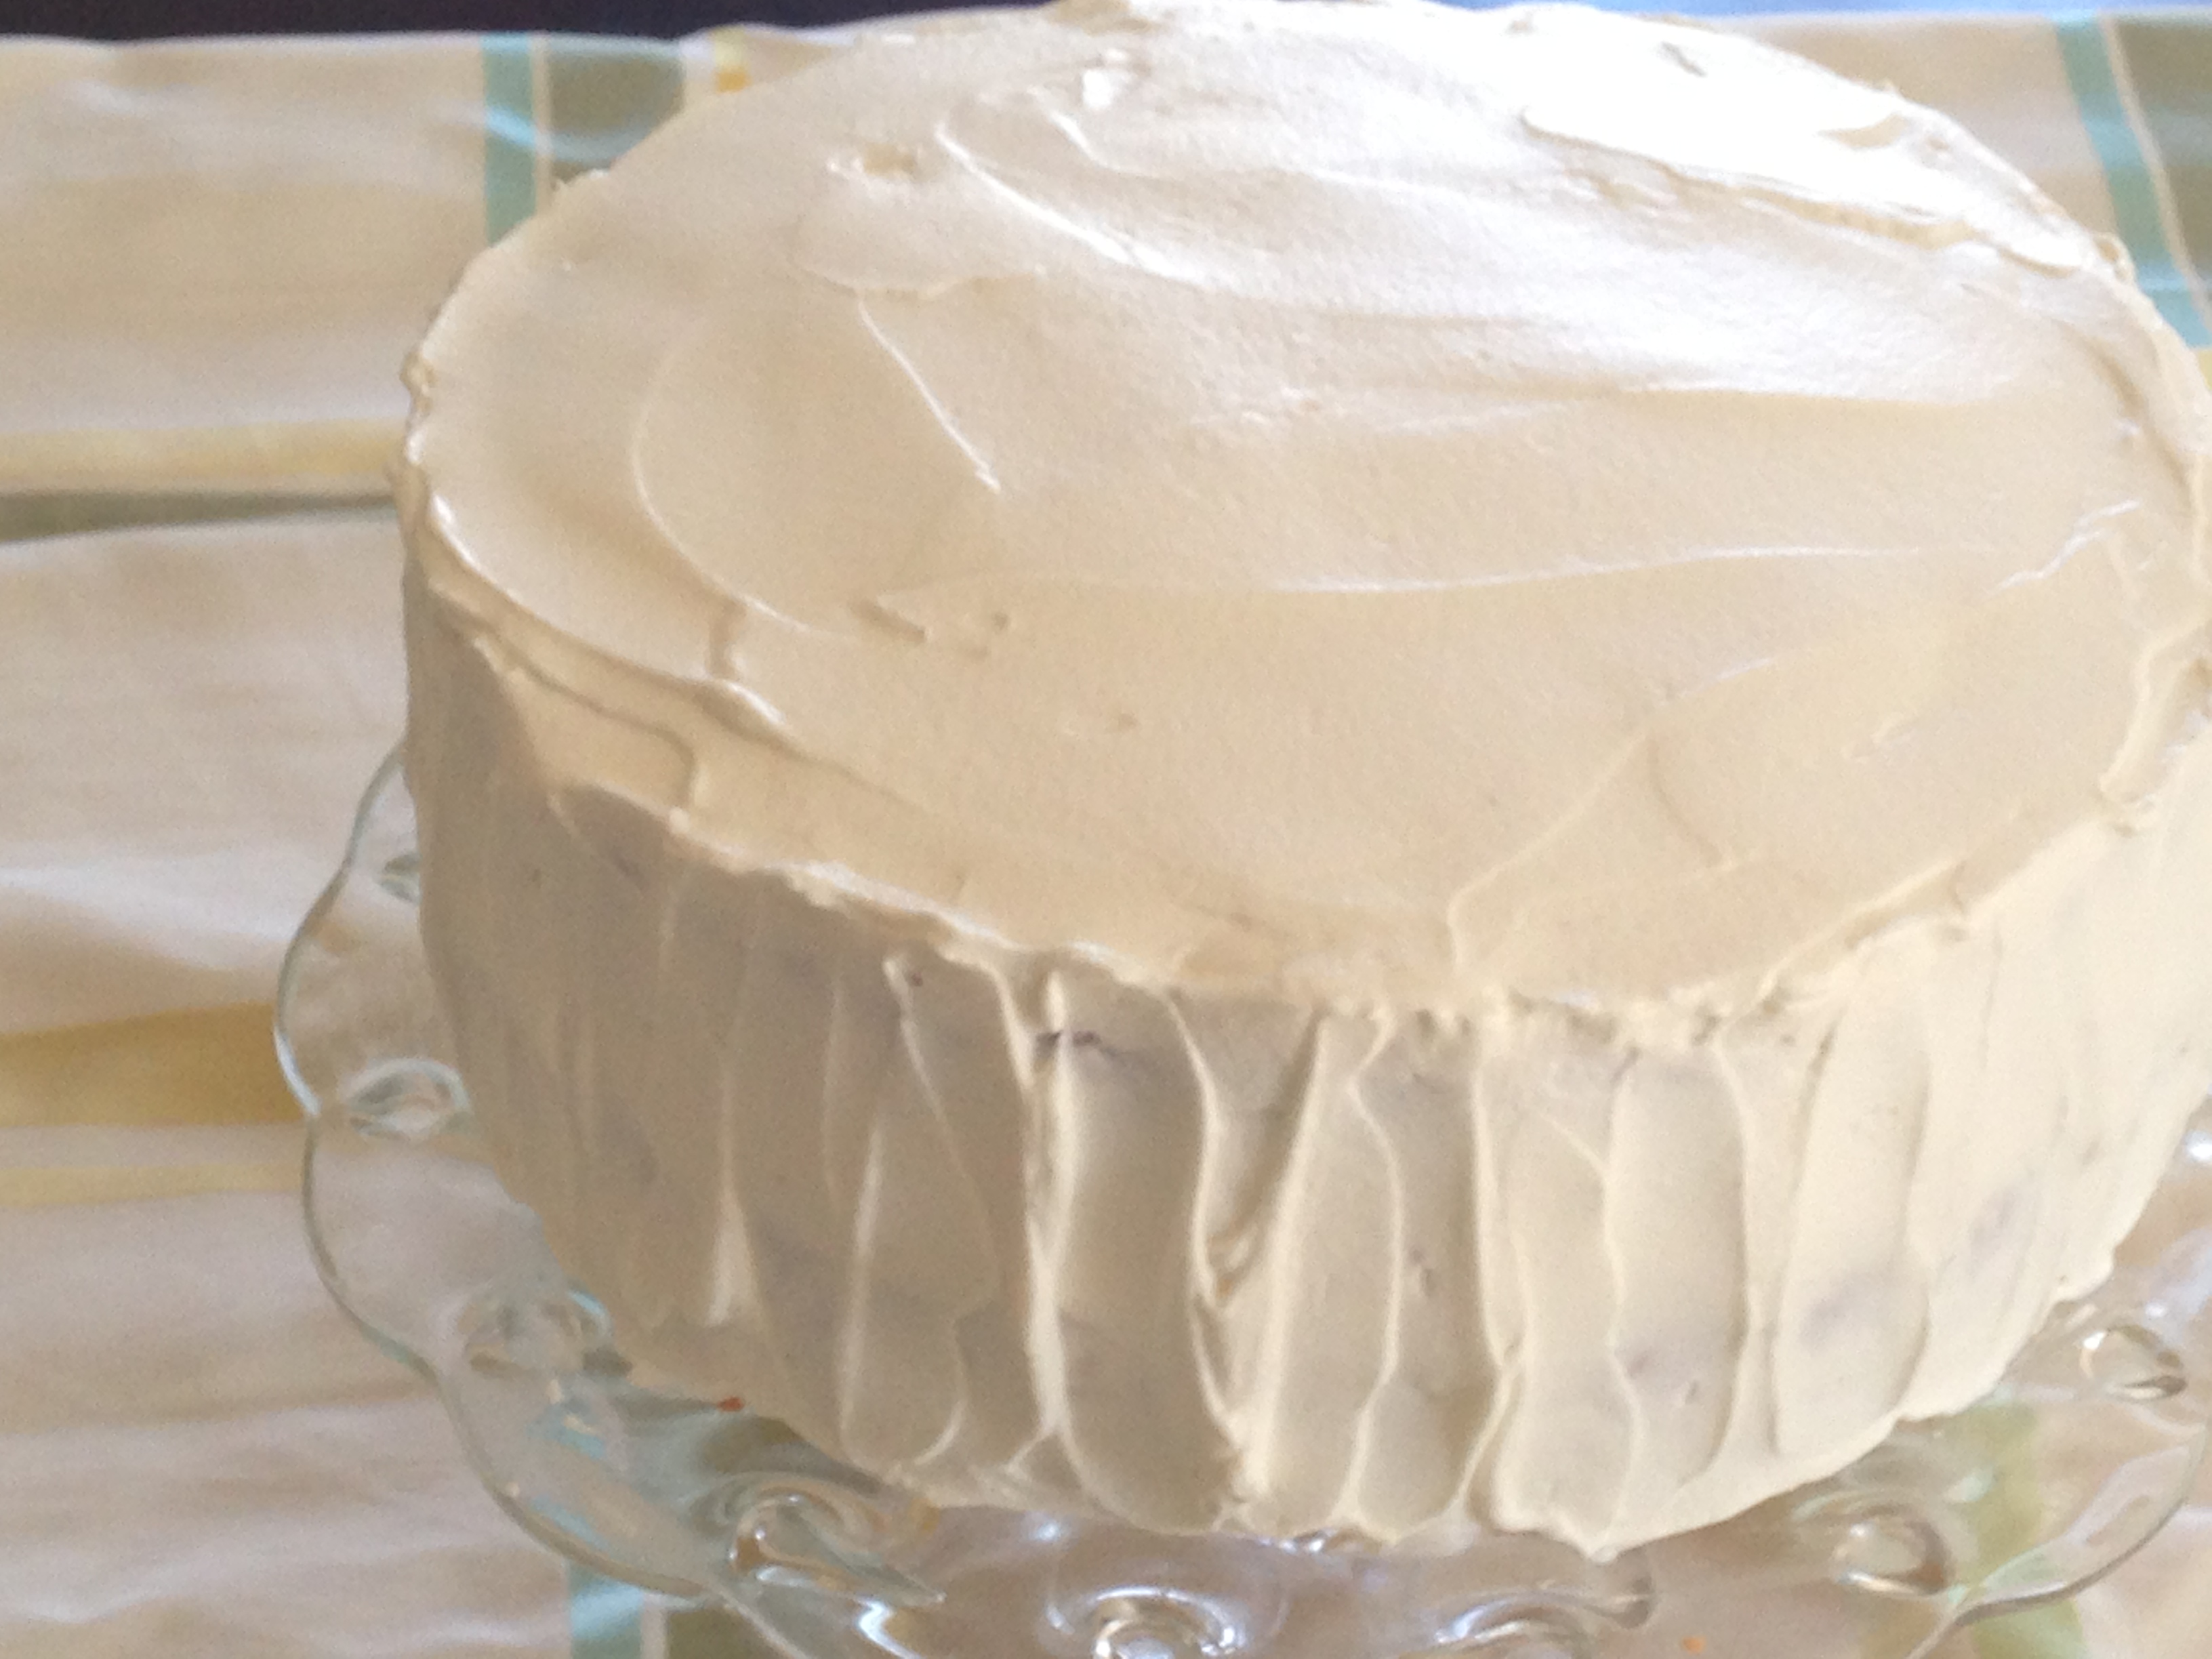 Cake With Cream Frosting : whipped cream frosting apuginthekitchen